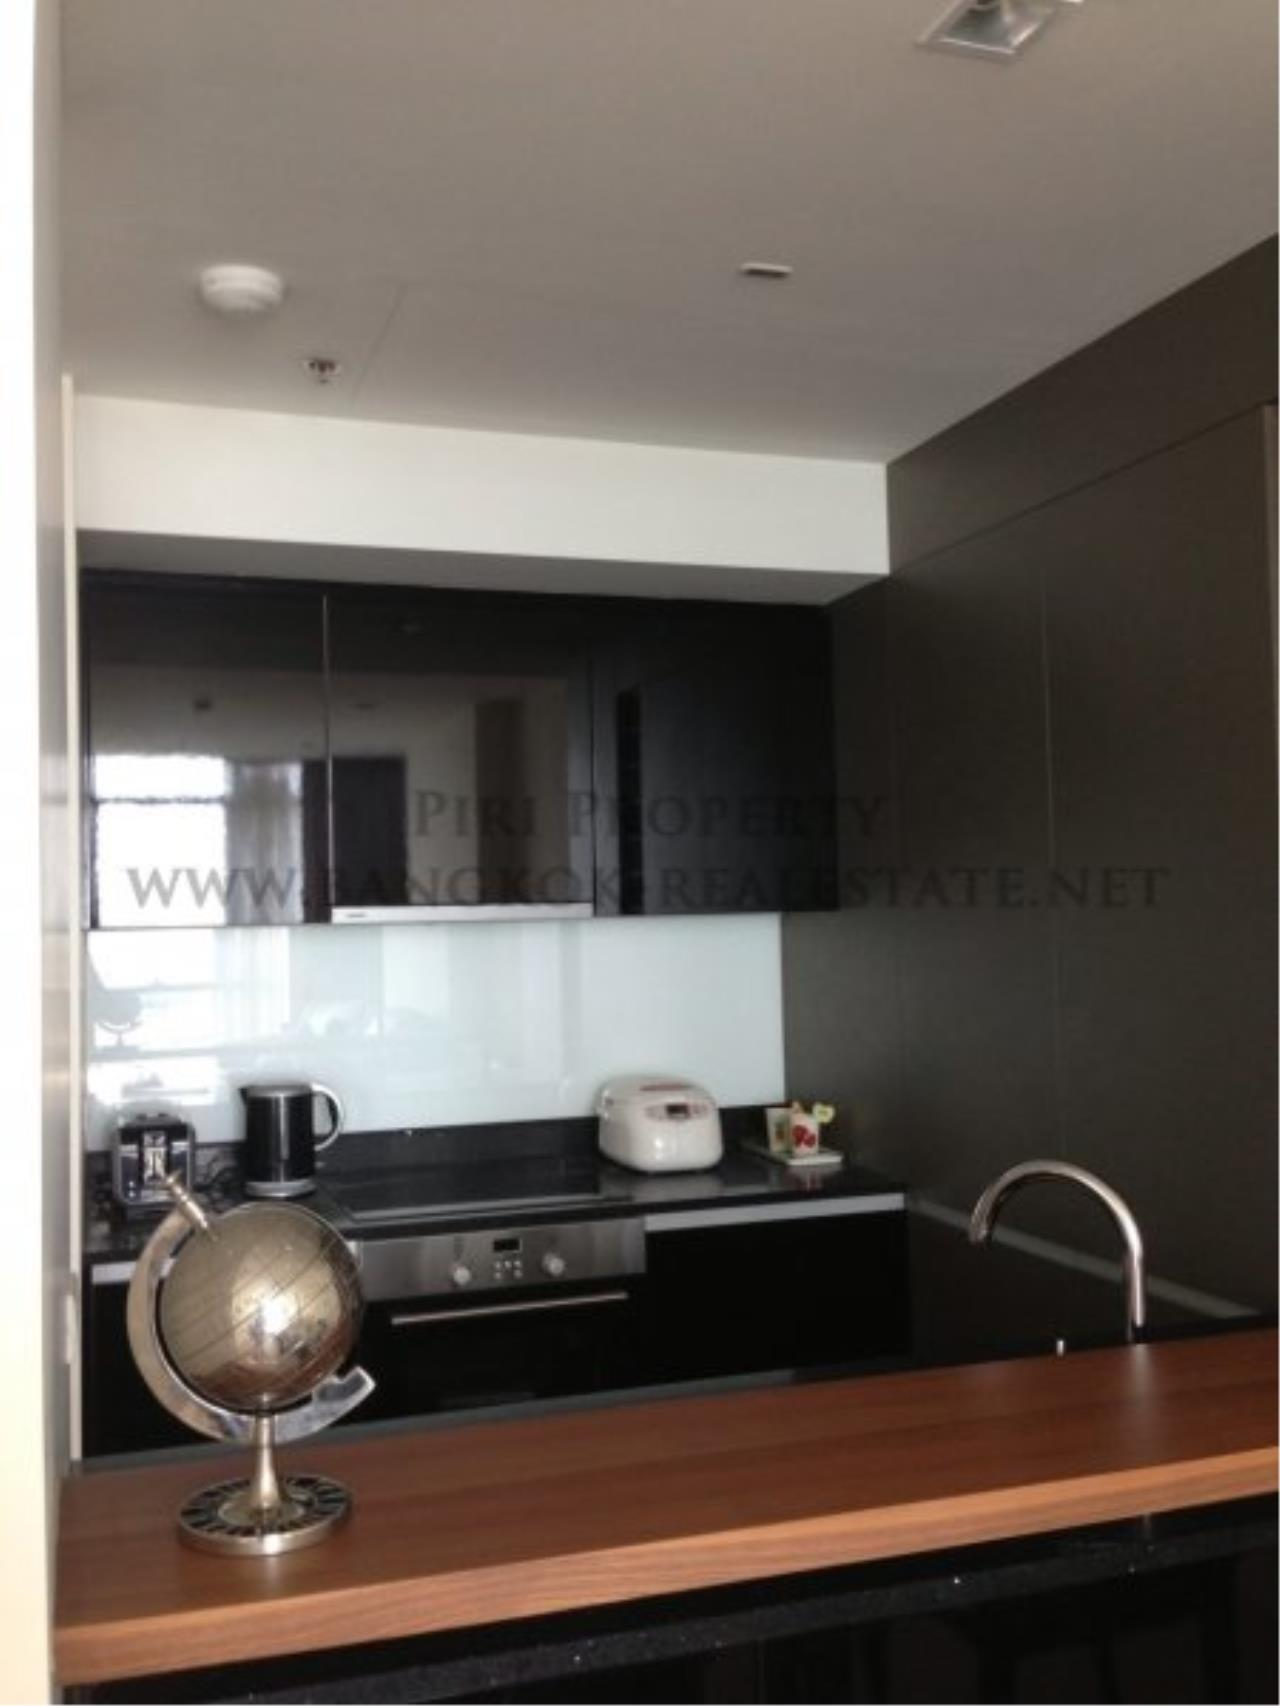 Piri Property Agency's The River Condo - 1 Bedroom - 17th Floor - Fully furnished 4